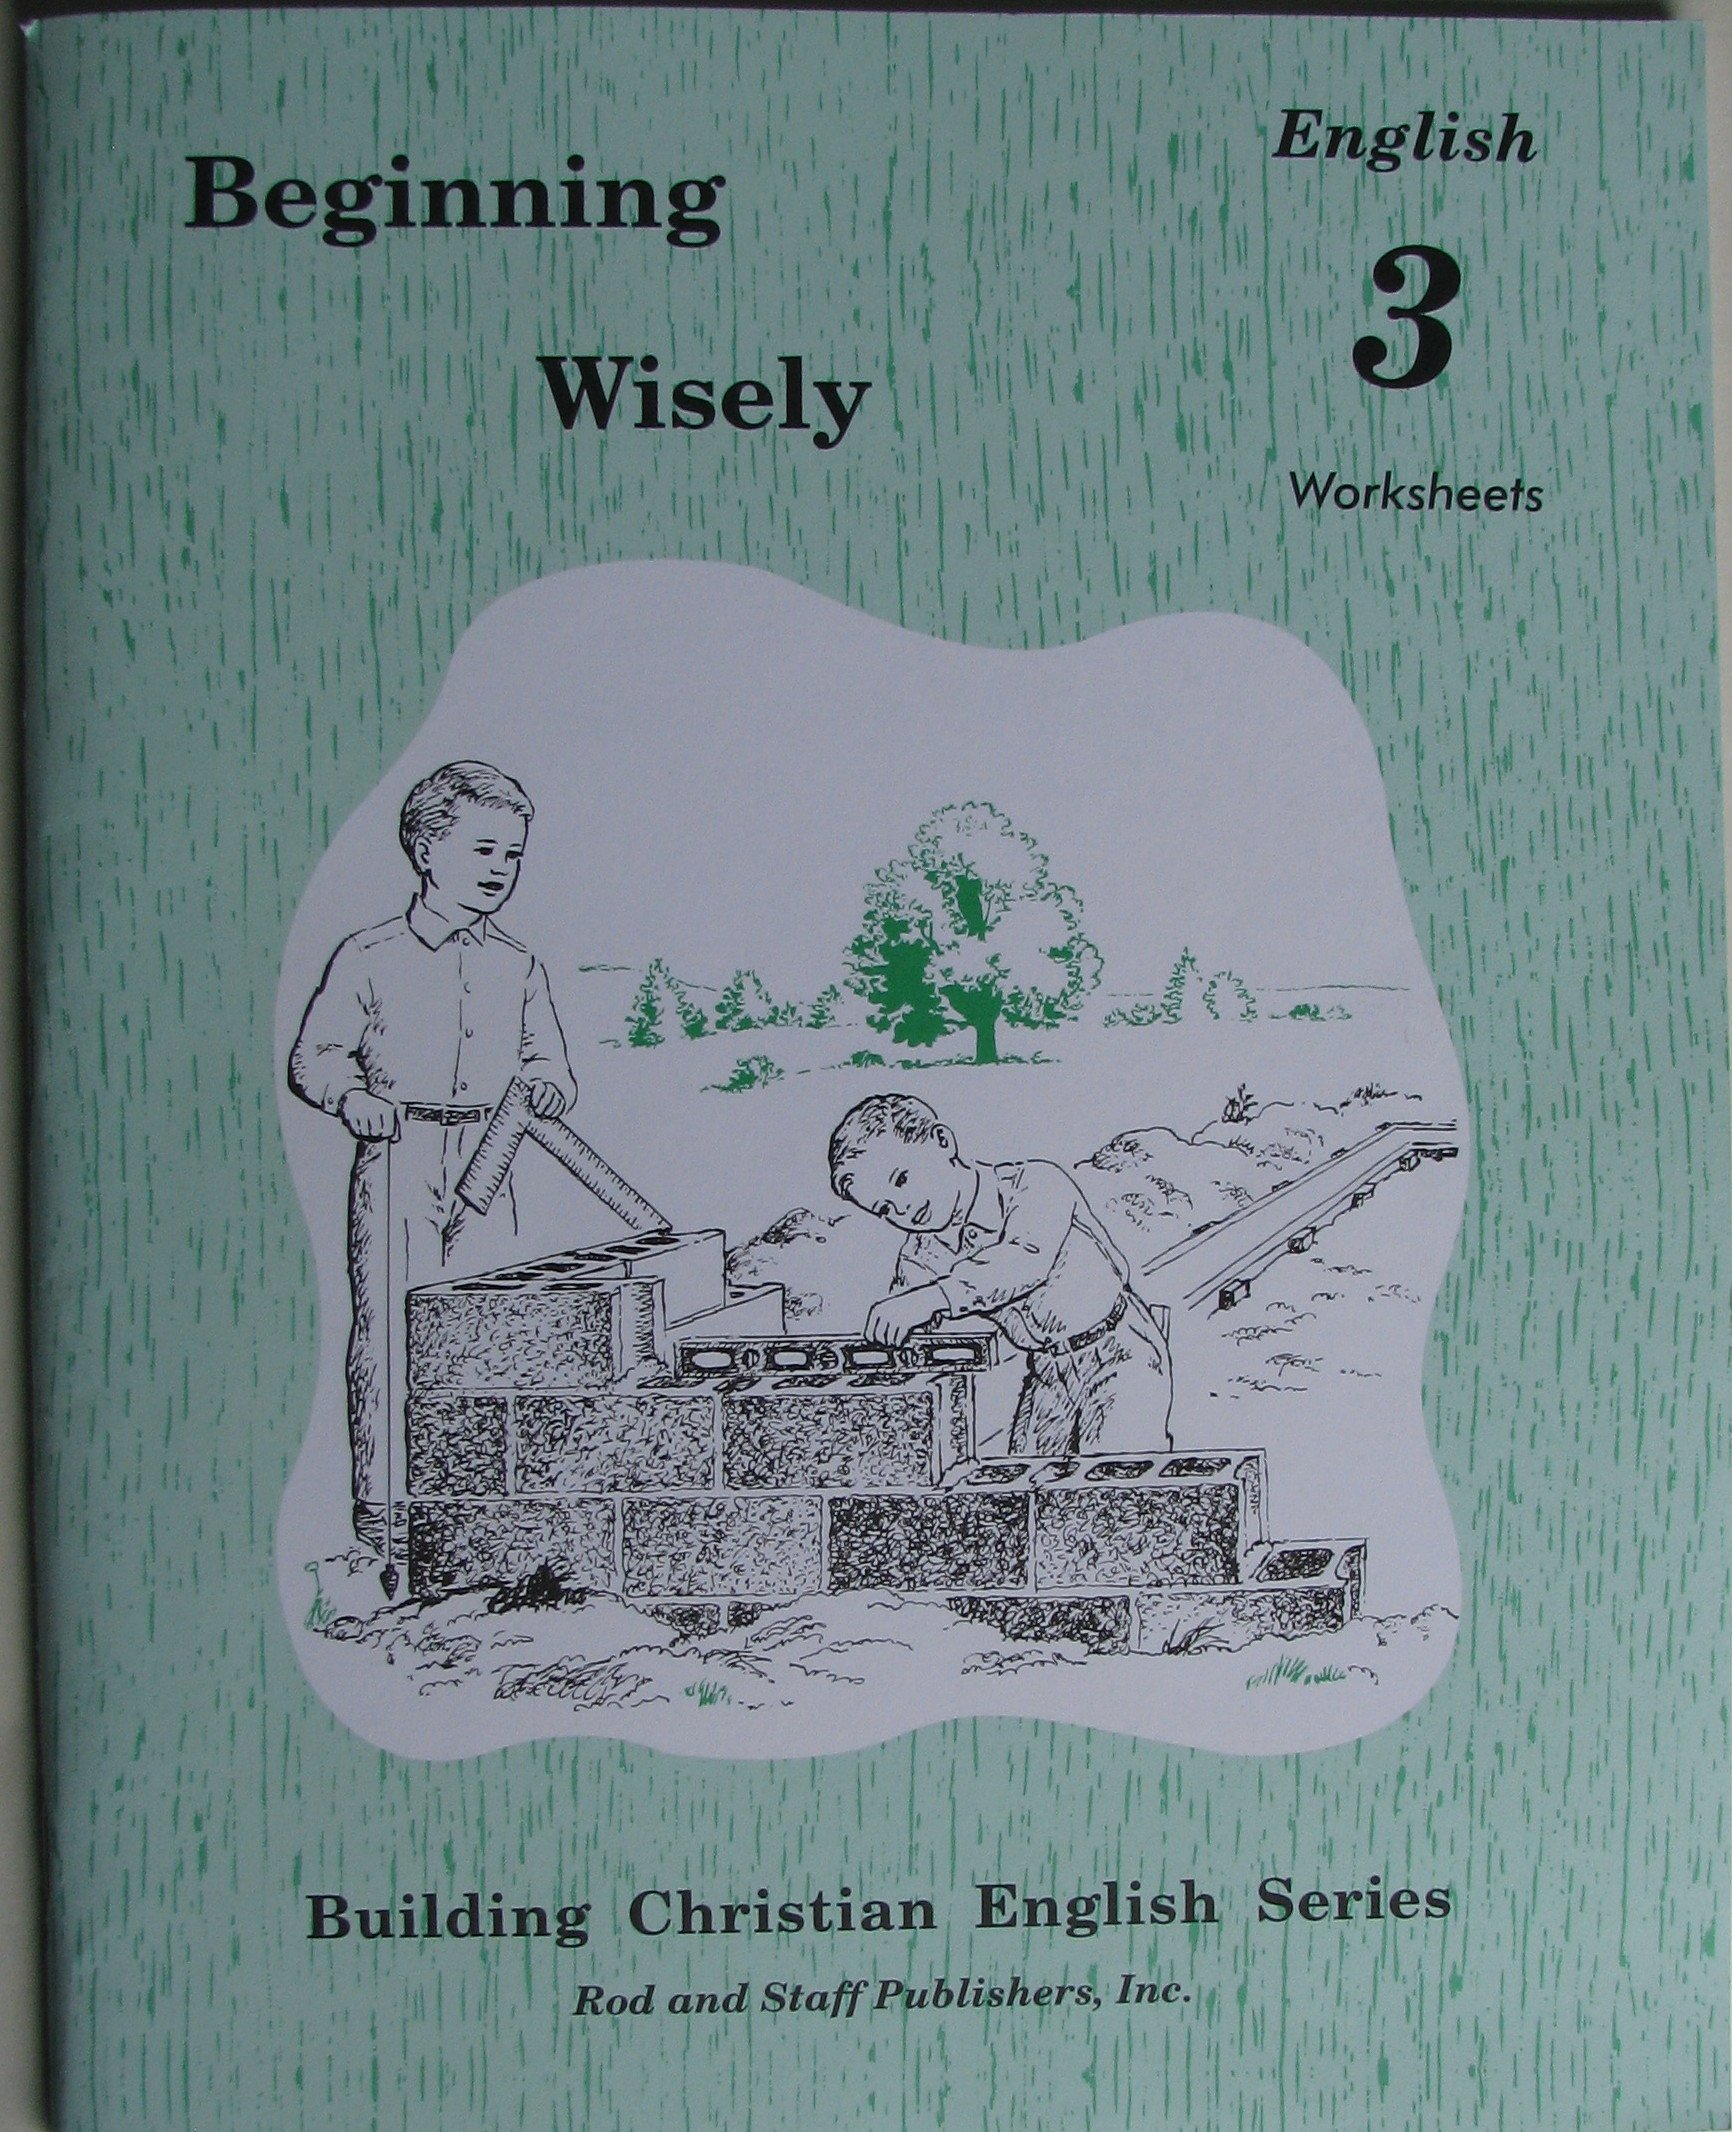 Beginning Wisely English 3 Worksheets (Building Christian English ...